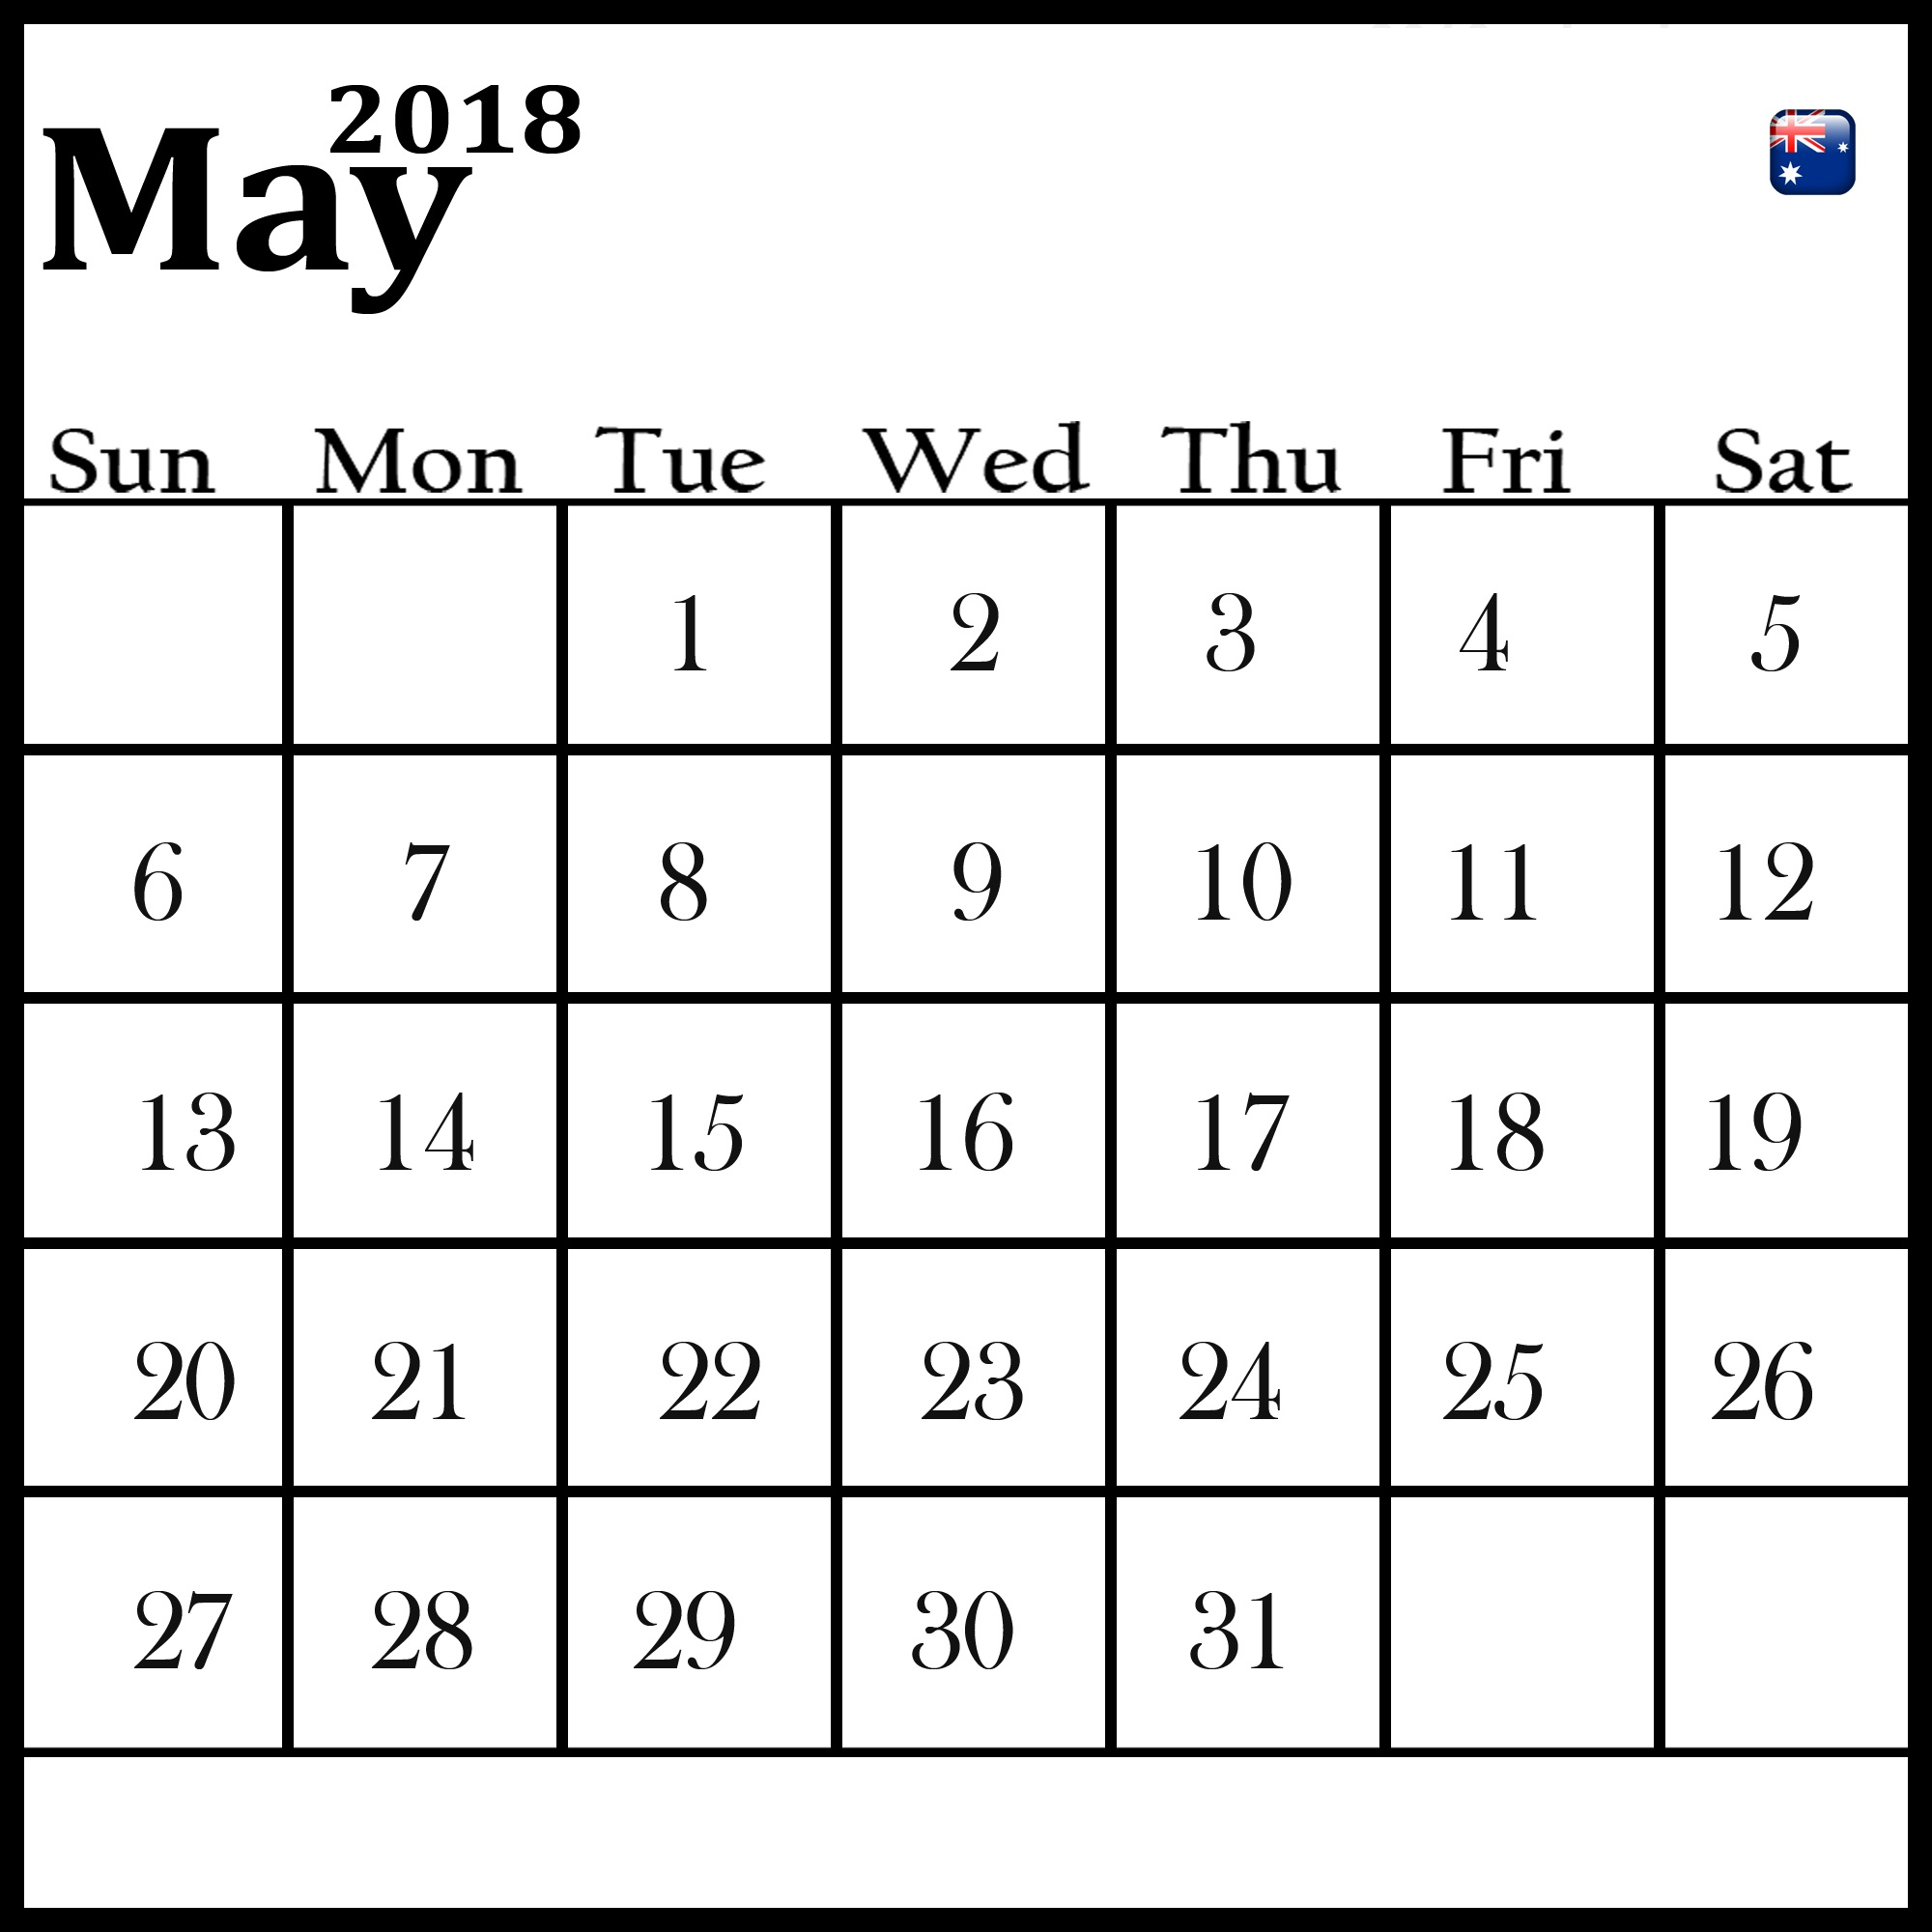 May 2018 Calendar Australia With Holidays